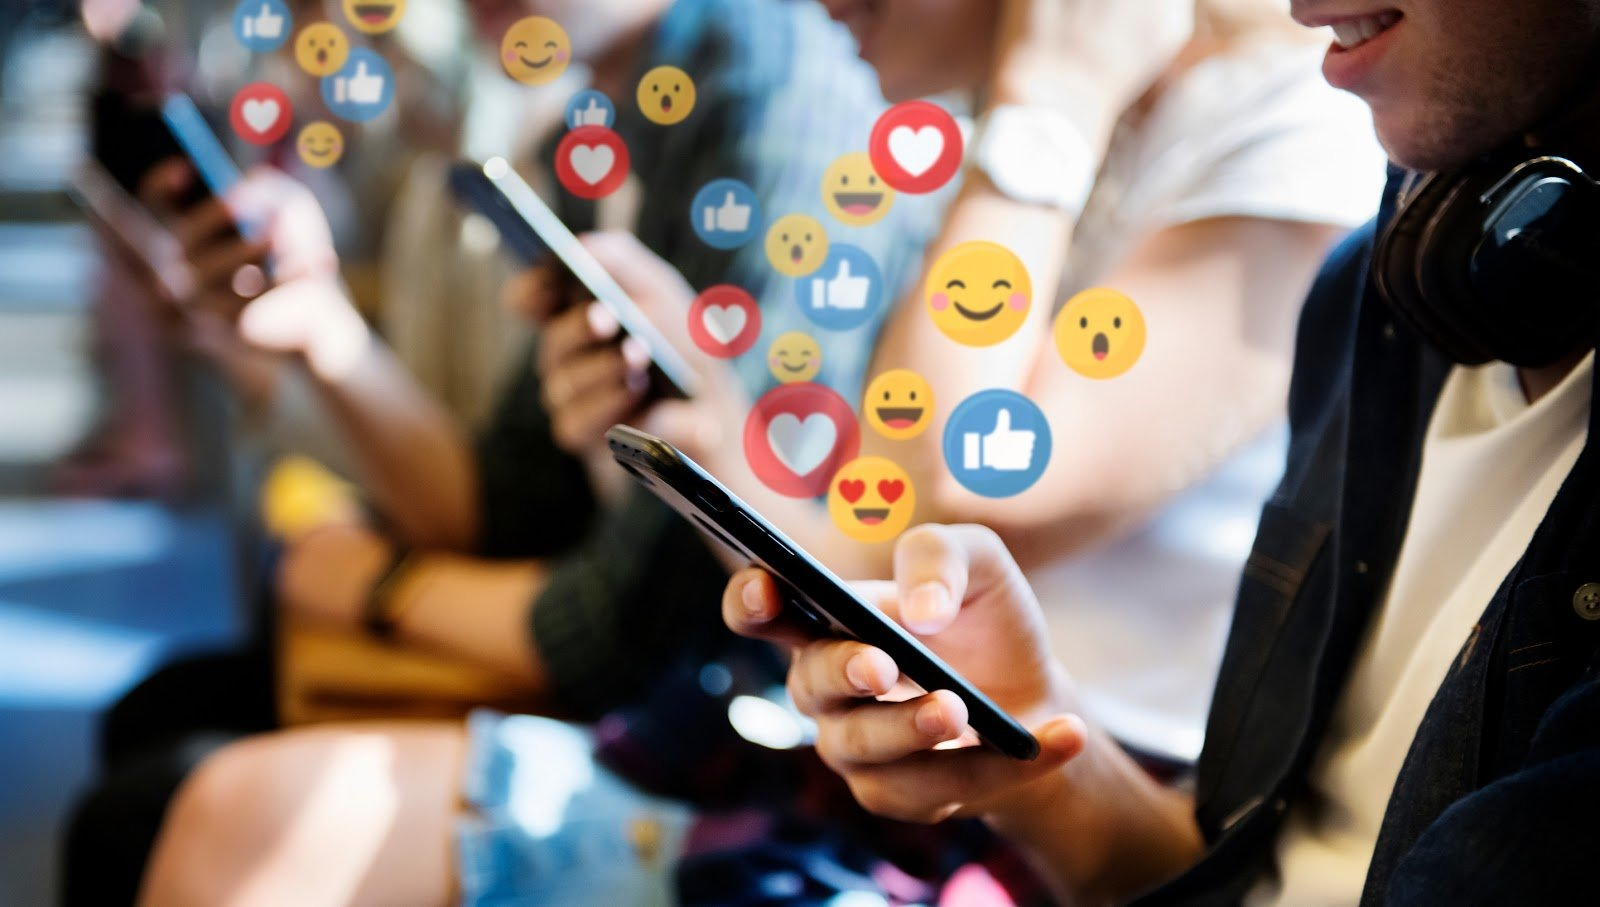 A line of people using their phones with various emojis and reaction icons floating above them.